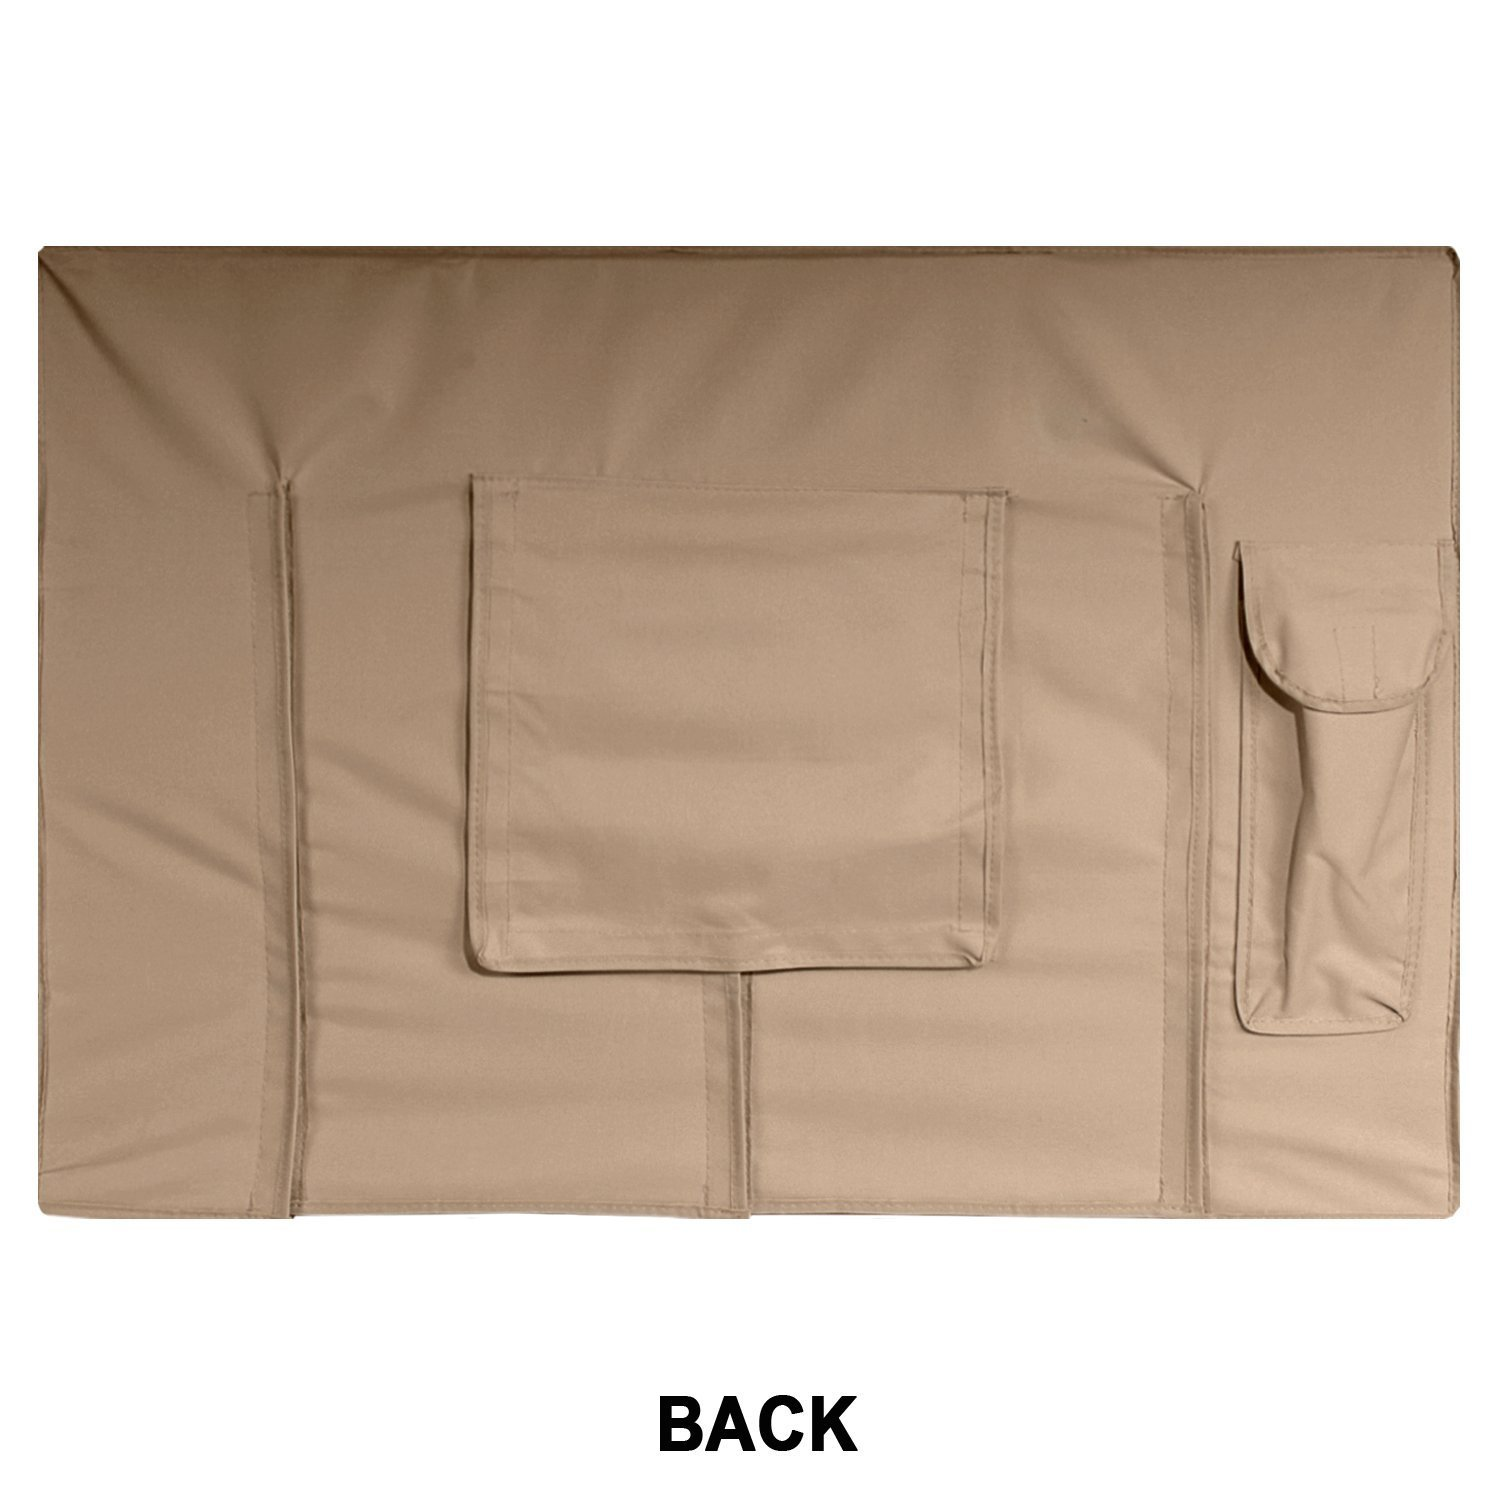 Outdoor TV Cover, Brown Universal Weatherproof Protector for 50'' - 52'' TV - Fits Most Mounts & Brackets by KHOMO GEAR (Image #6)